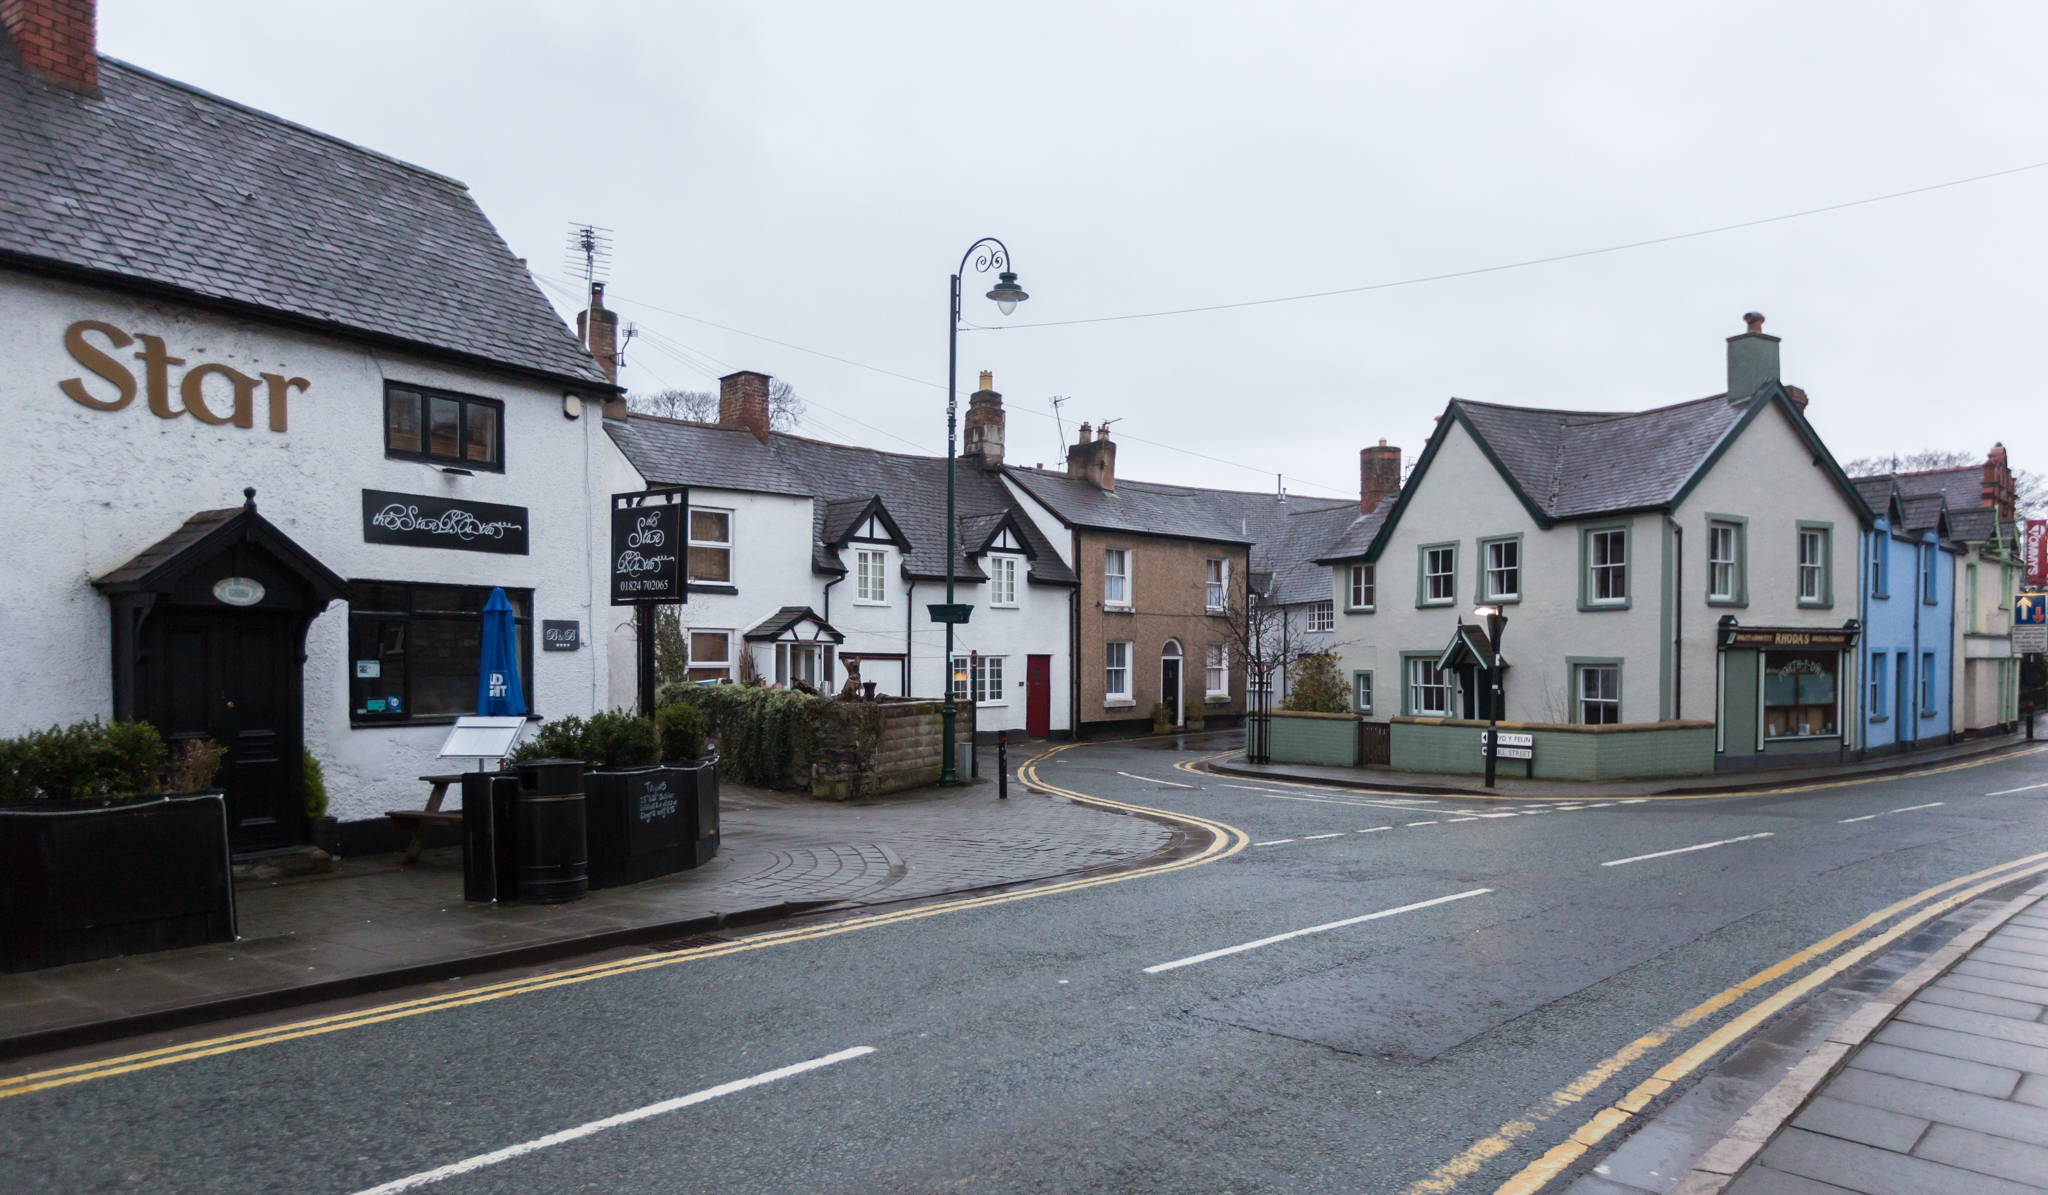 Clwyd Street, Ruthin near to the location of a serious assault - DJW190218